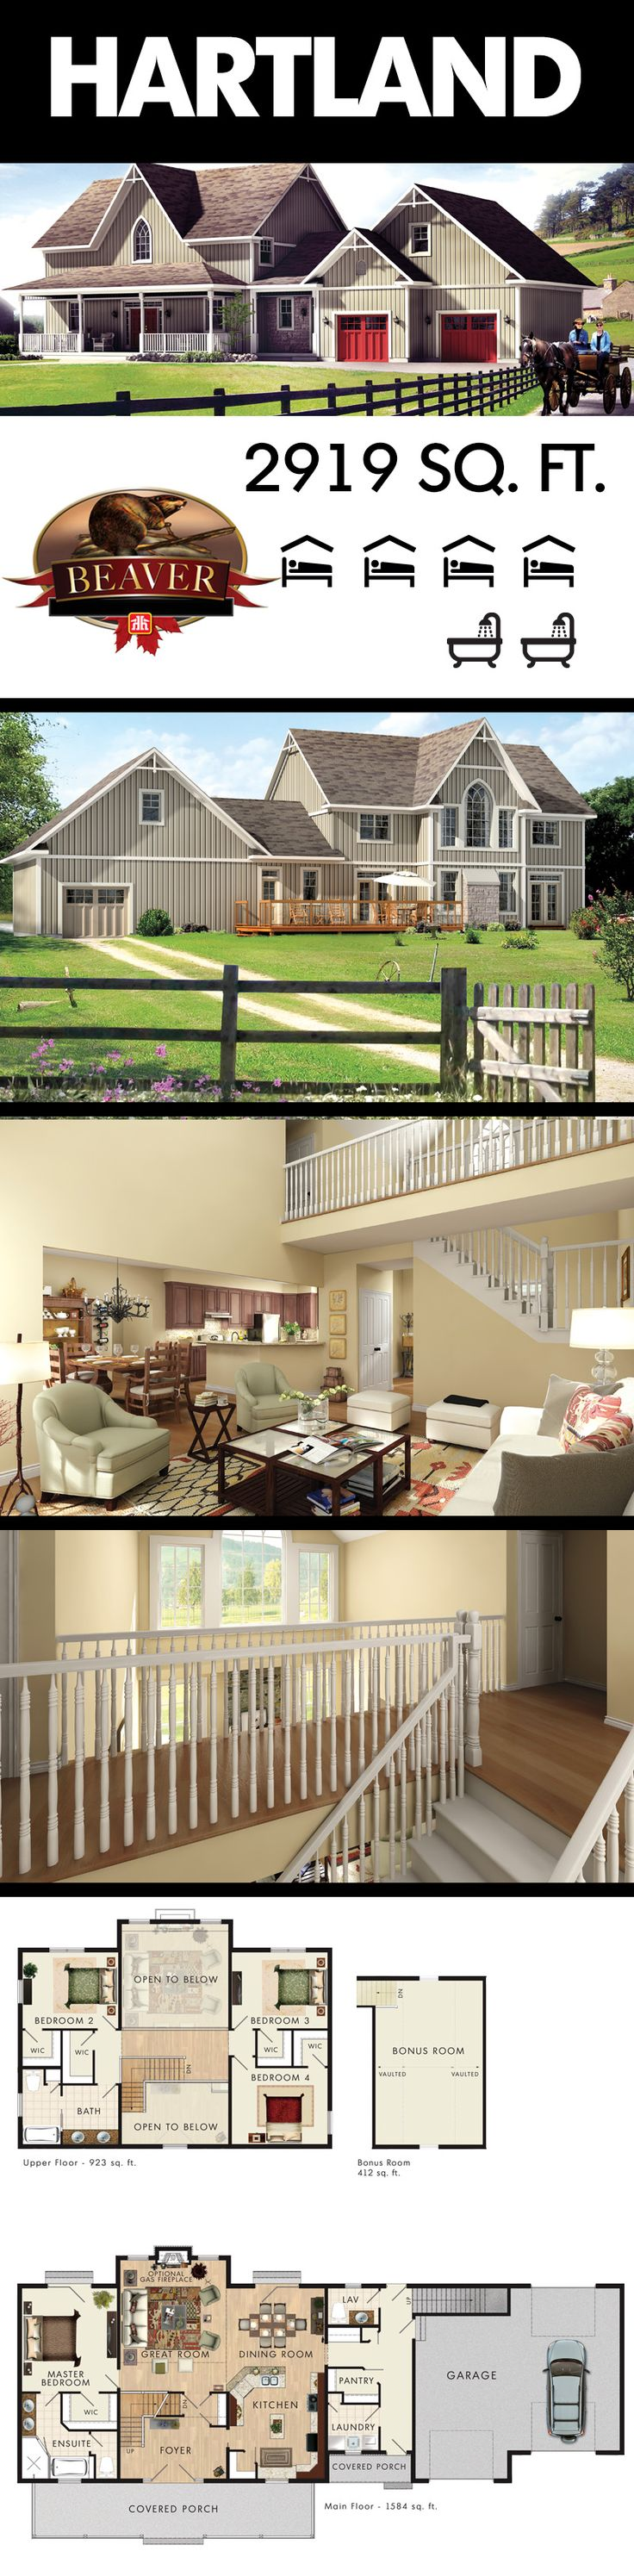 get 20 country home exteriors ideas on pinterest without signing